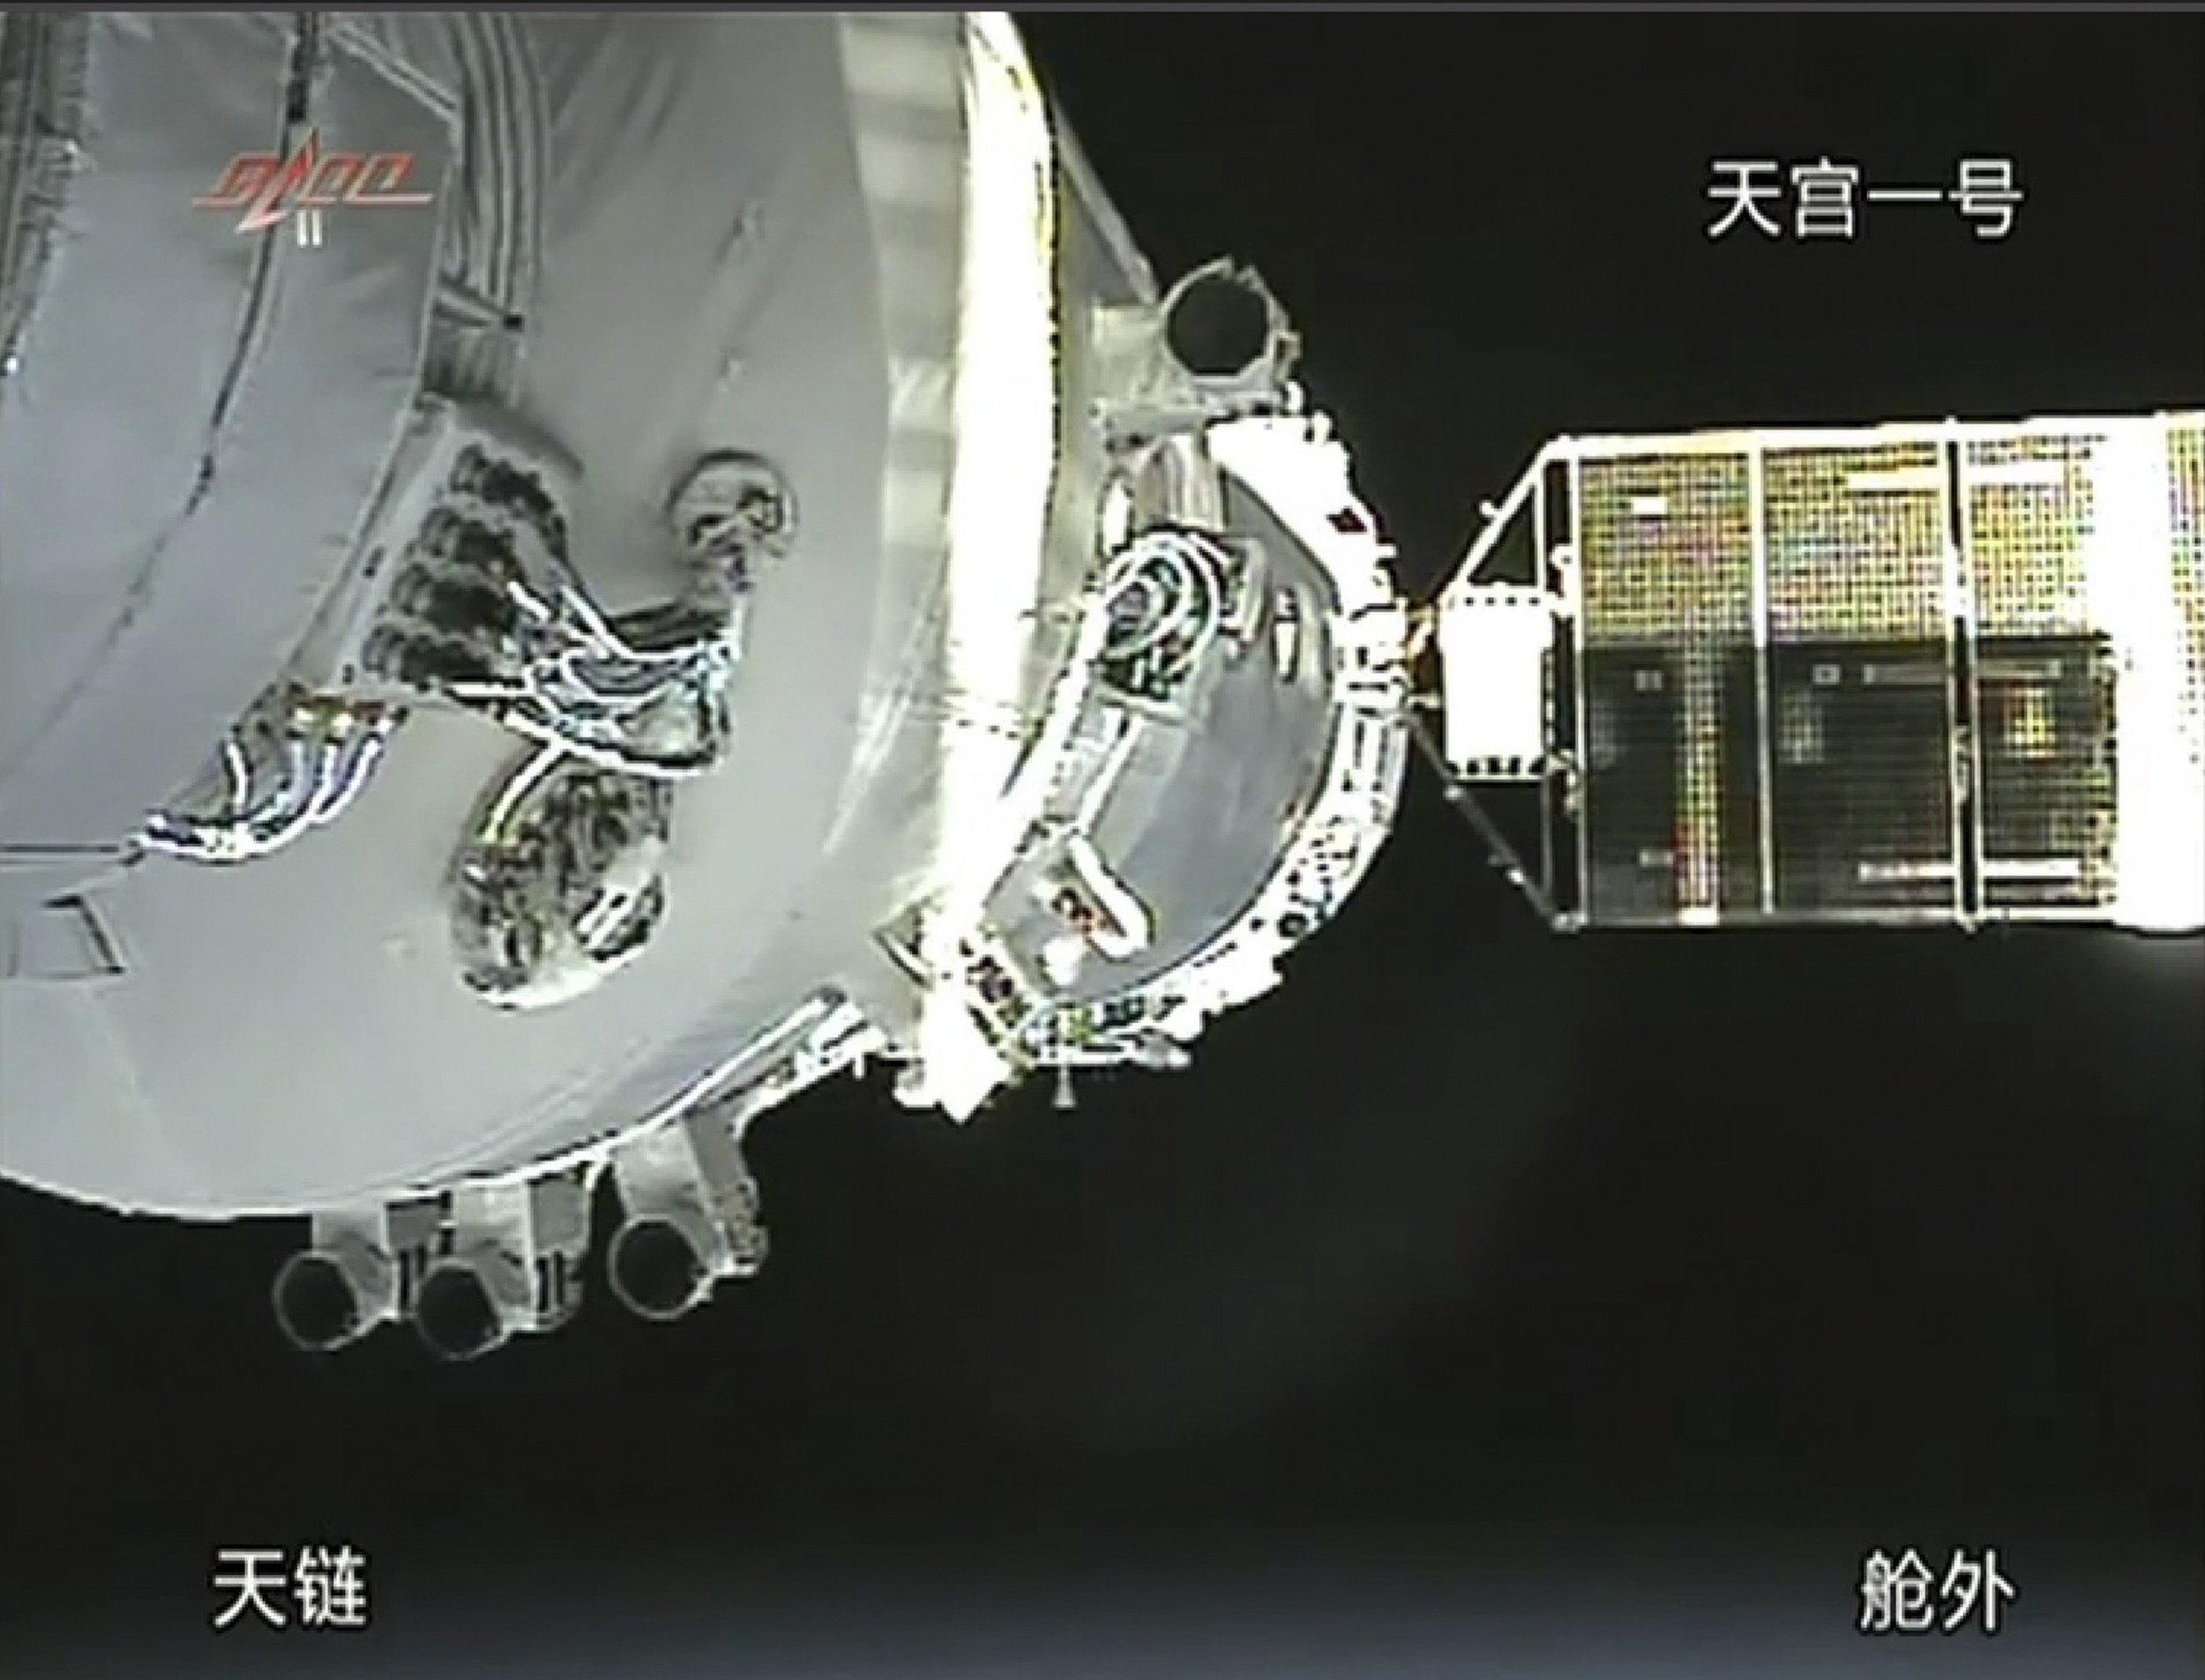 FILE - In this Nov. 3, 2011, file image taken from video from China's CCTV via AP Video, China's Shenzhou-8 spacecraft is docked with the orbiting Tiangong-1 space station. China???s defunct and believed out-of-control Tiangong 1 space station is expected to re-enter Earth???s atmosphere sometime in the coming days, although the risk to people and property on the ground is considered low. (CCTV via AP Video, File)